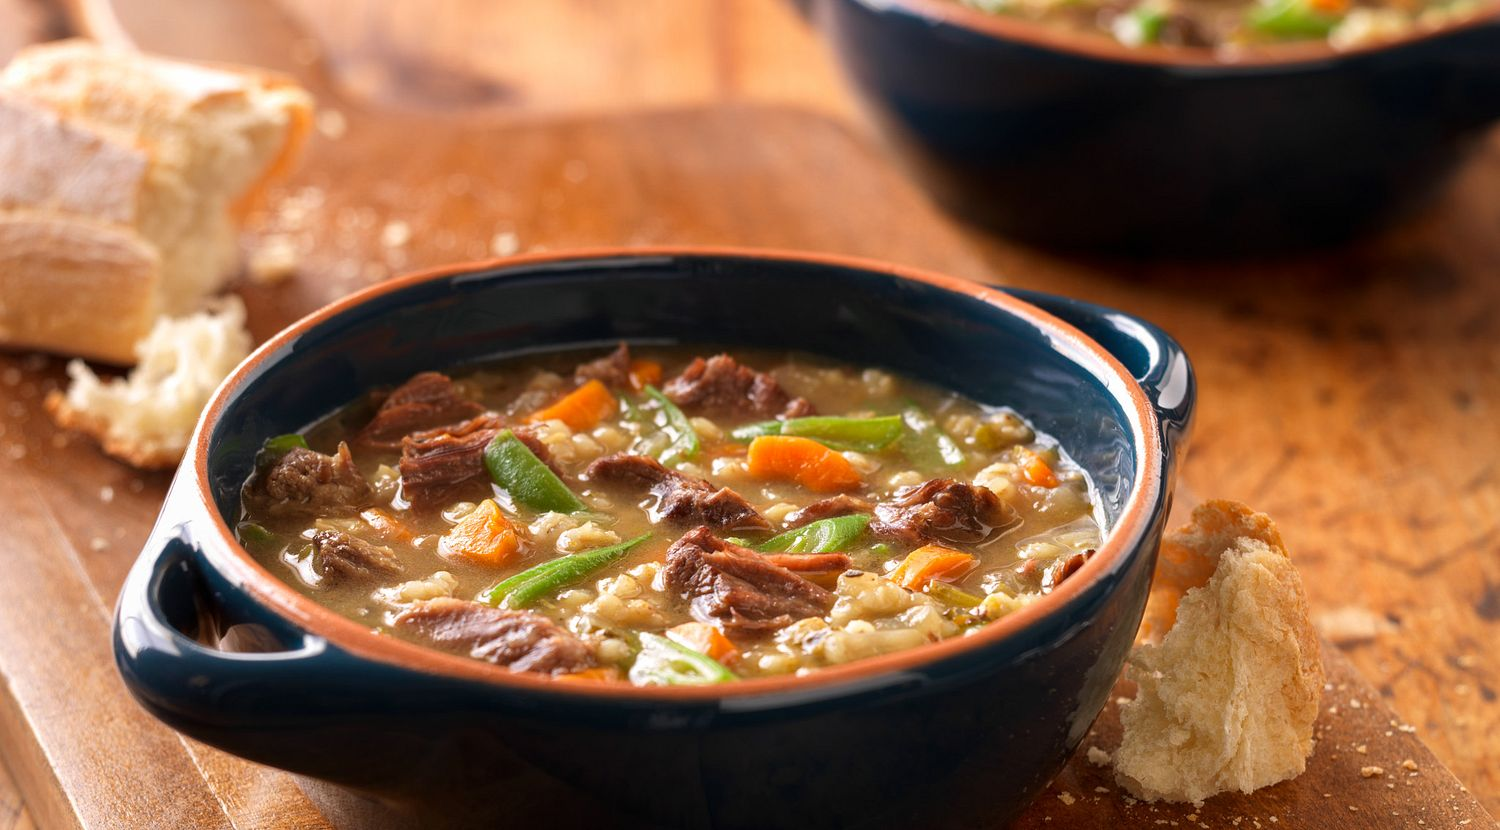 Classic Beef and Barley Soup